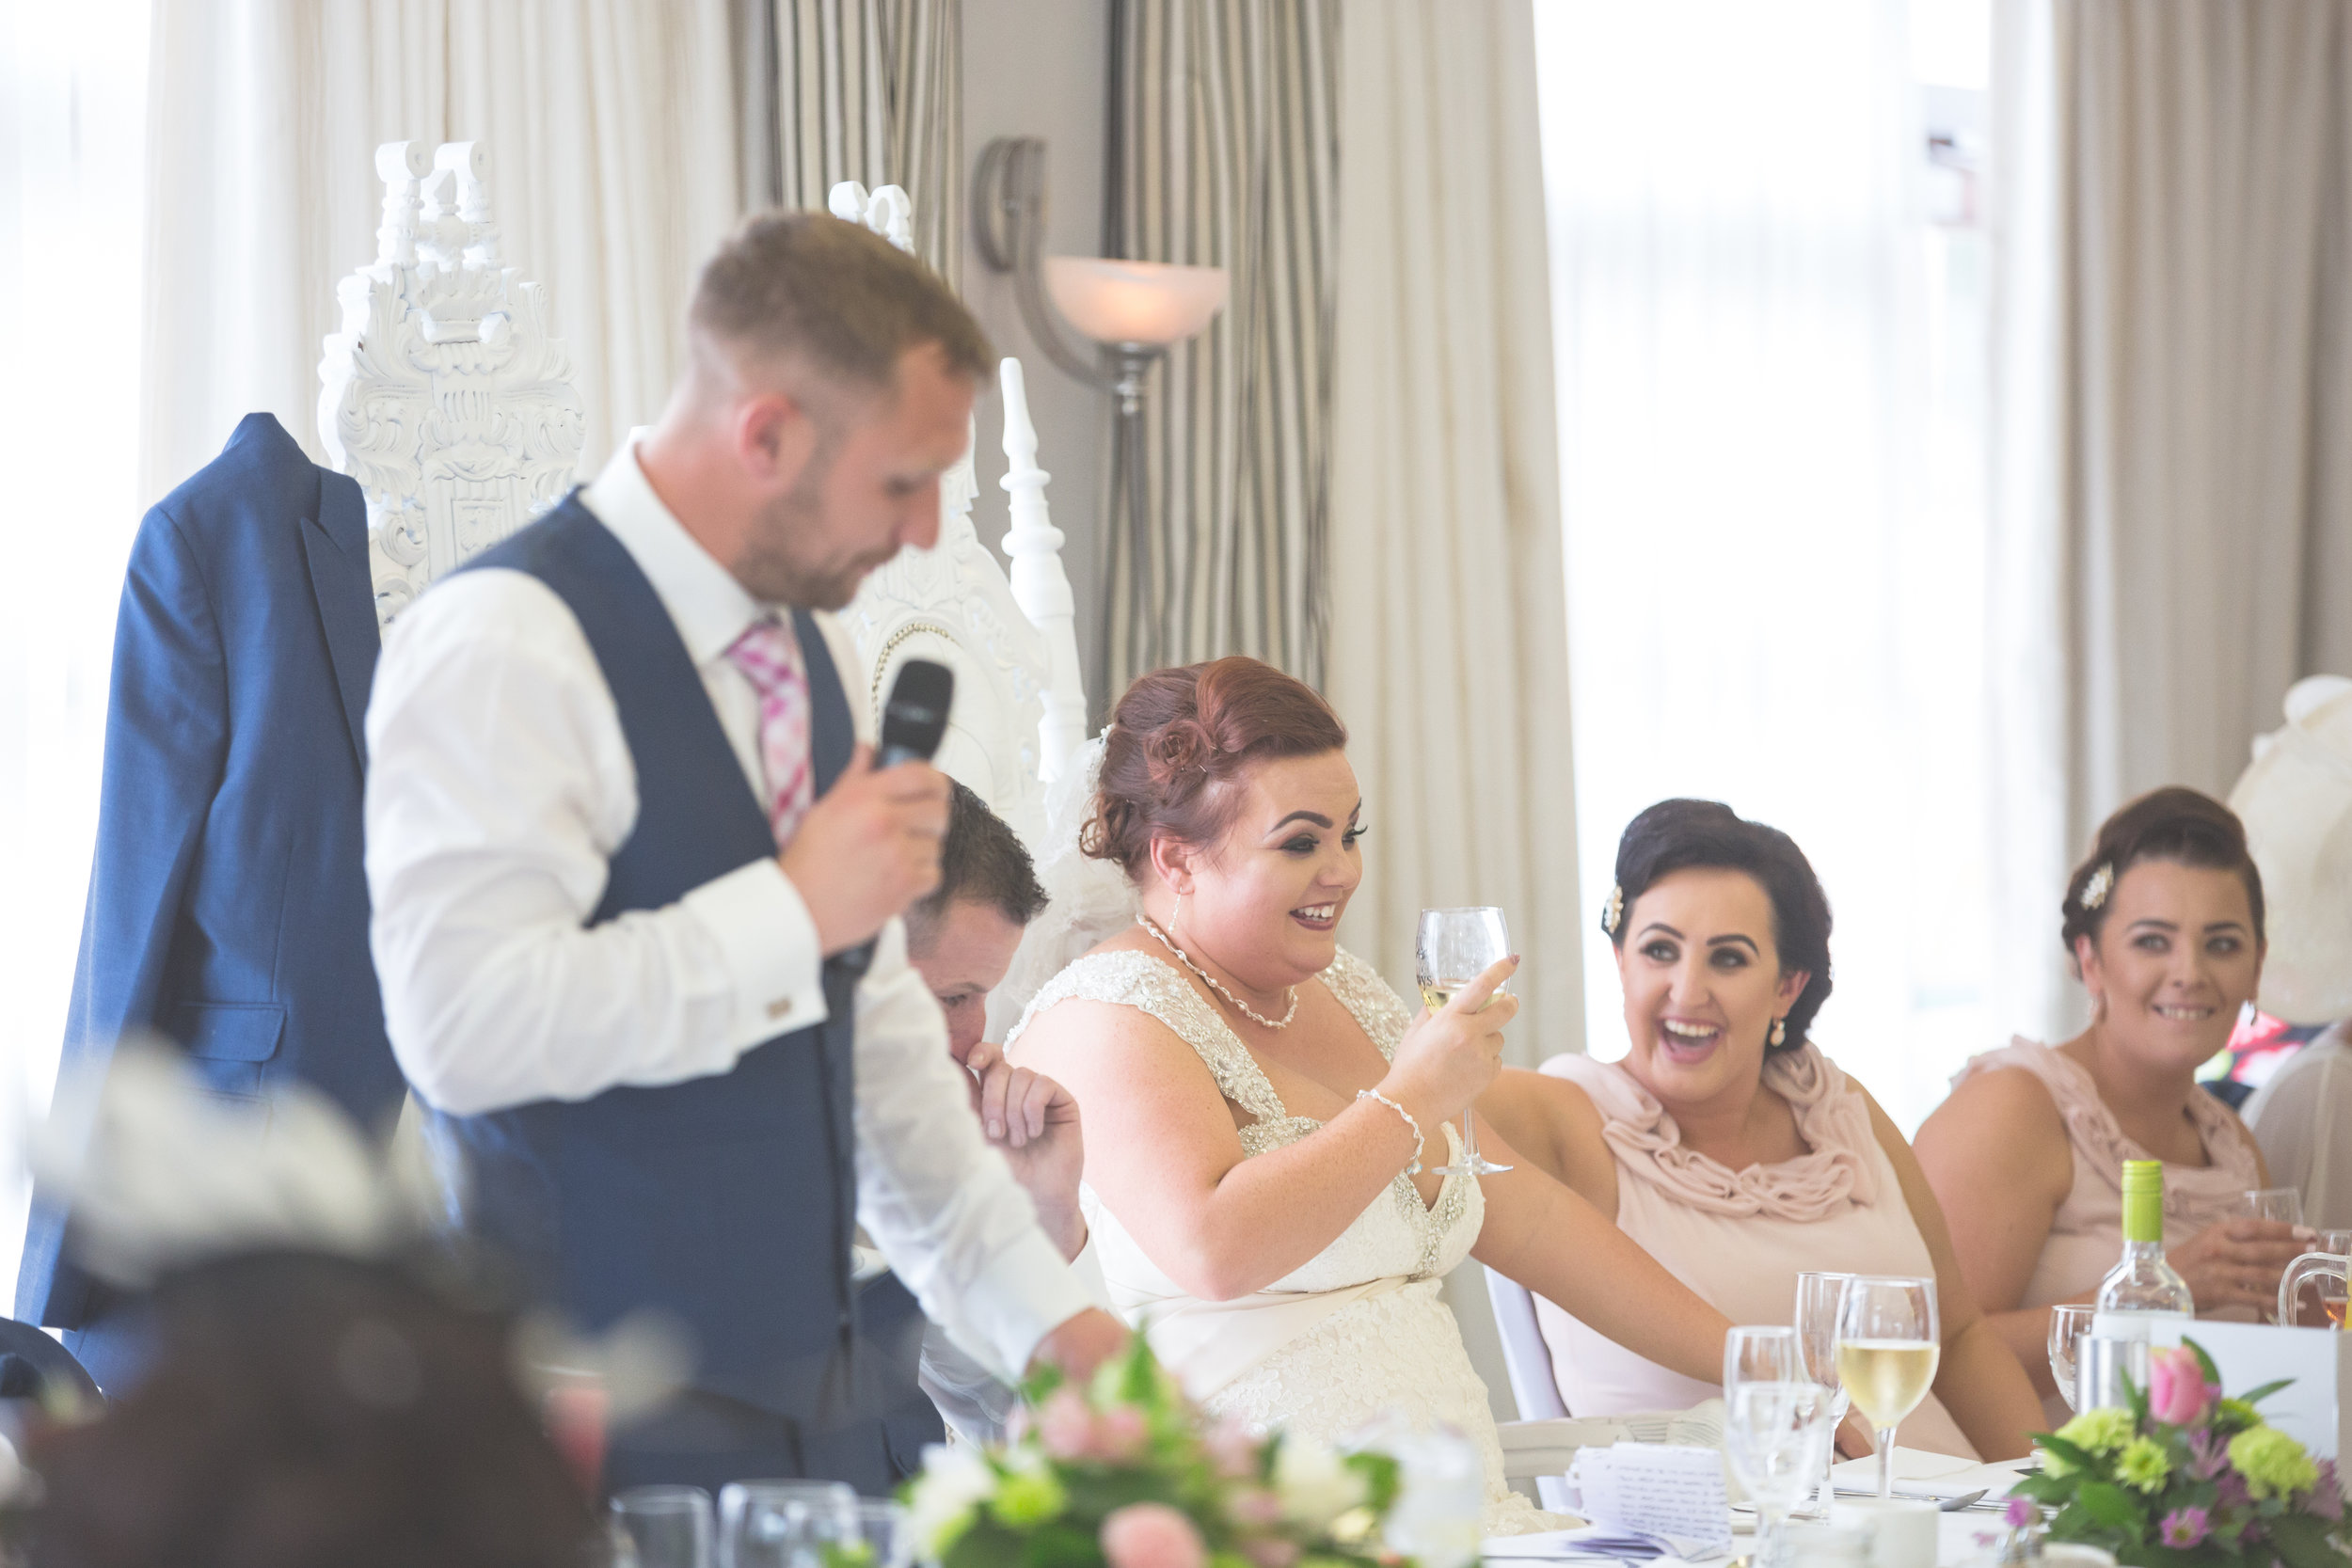 Antoinette & Stephen - Speeches | Brian McEwan Photography | Wedding Photographer Northern Ireland 89.jpg